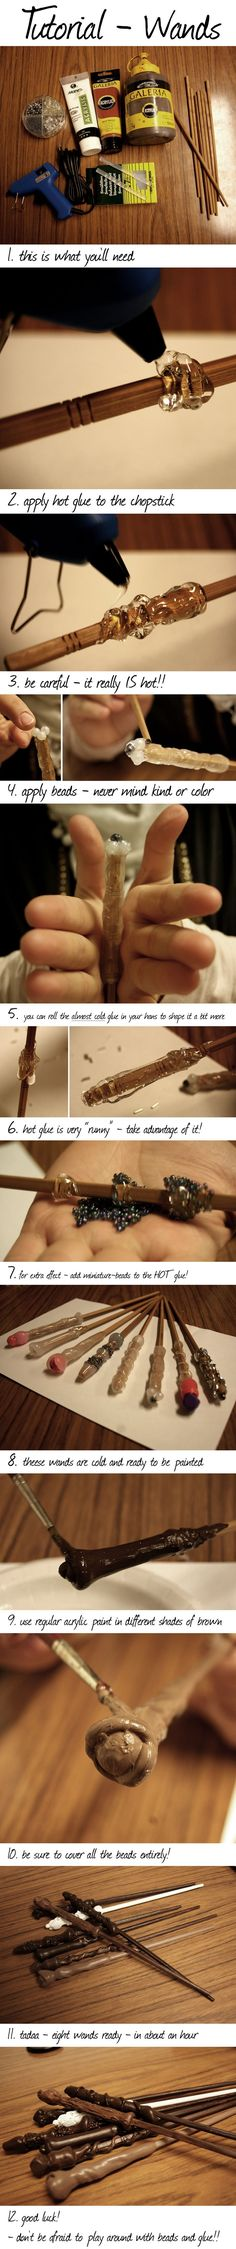 DIY wand! Would be adorable favors for a little girls birthday party :-)